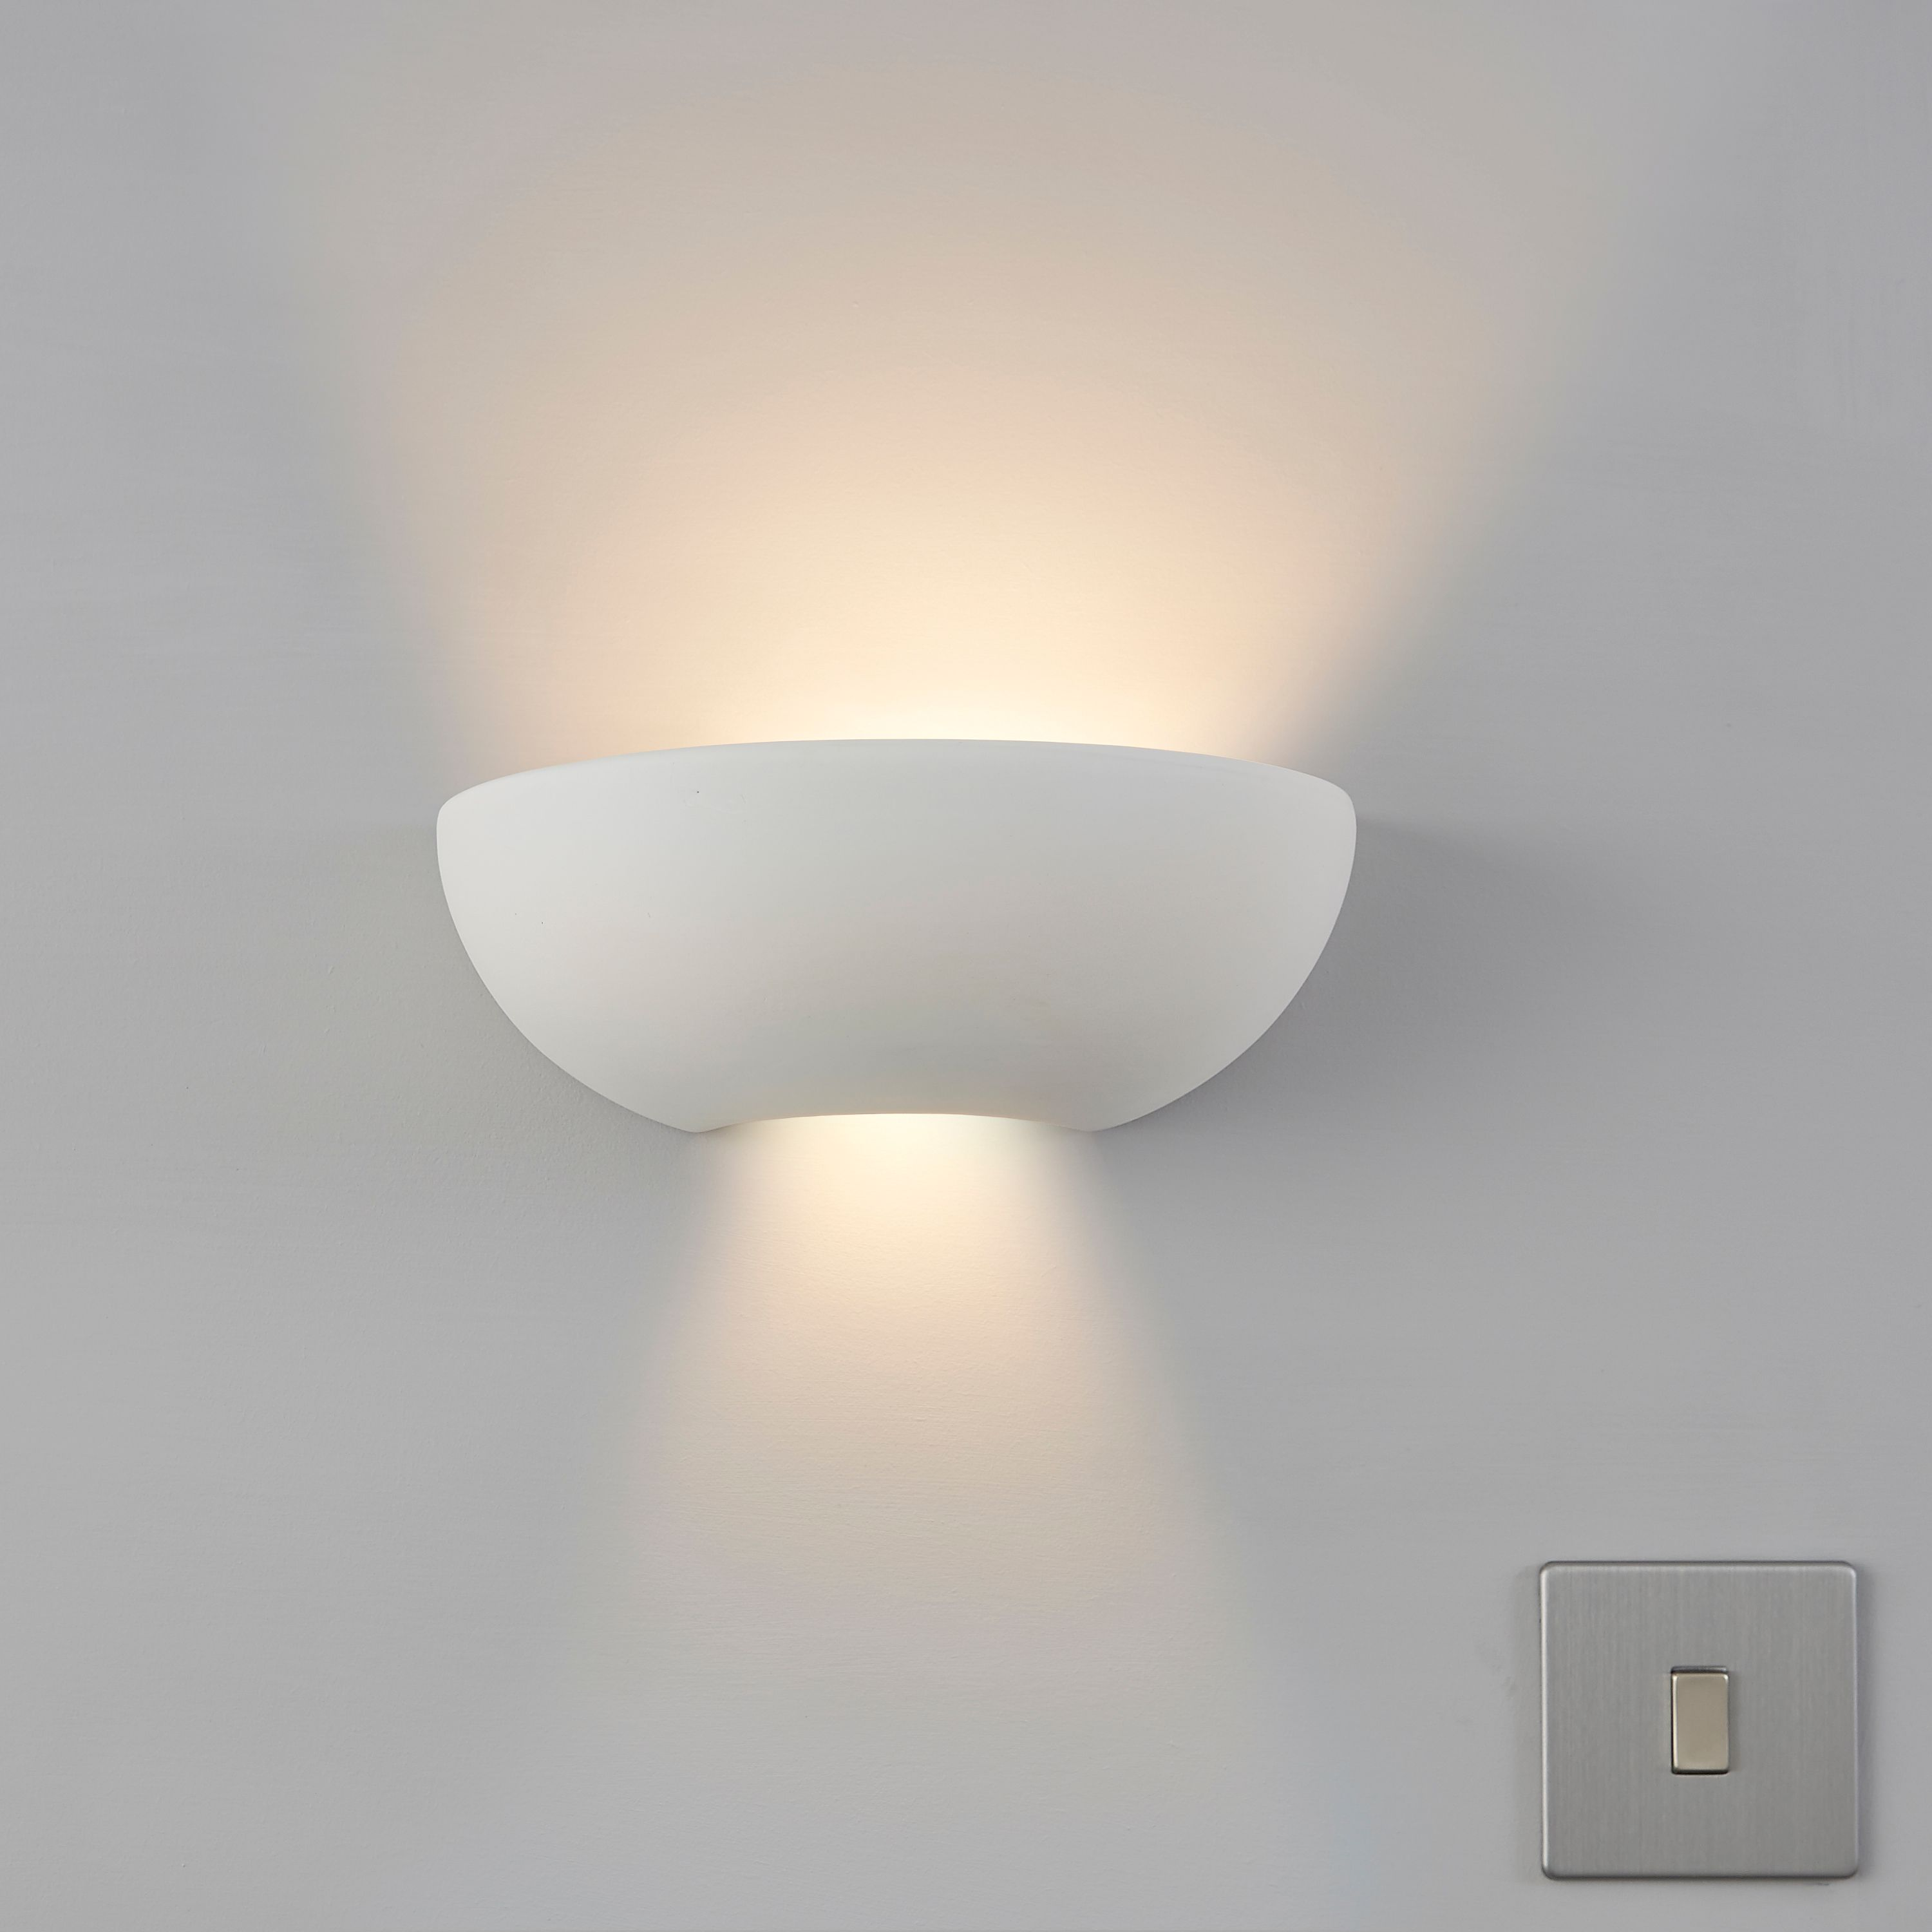 Wall Lights Without Wiring Lighting Design Ideas How